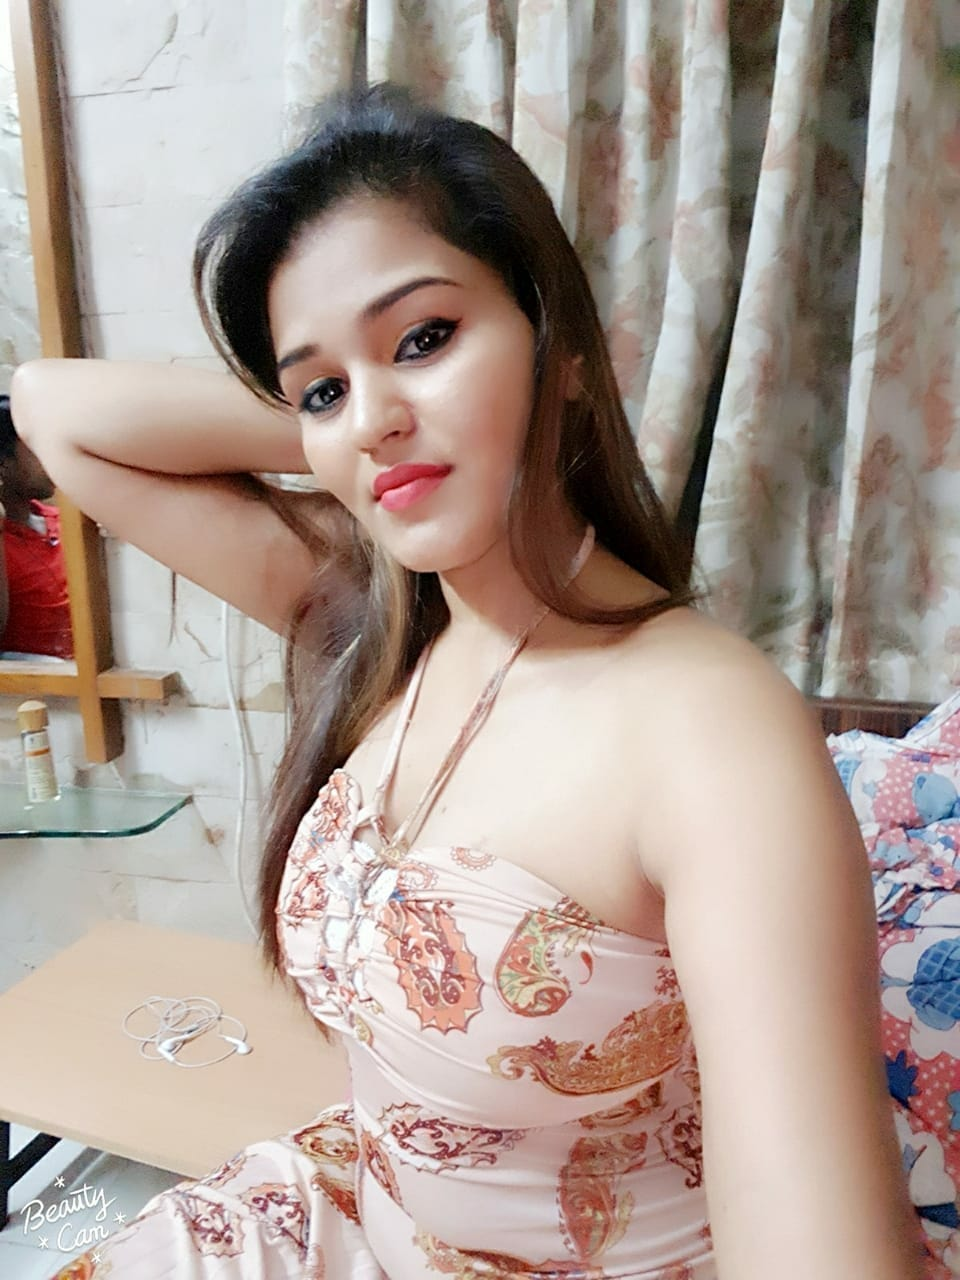 Airhostess Escorts In  Belapur